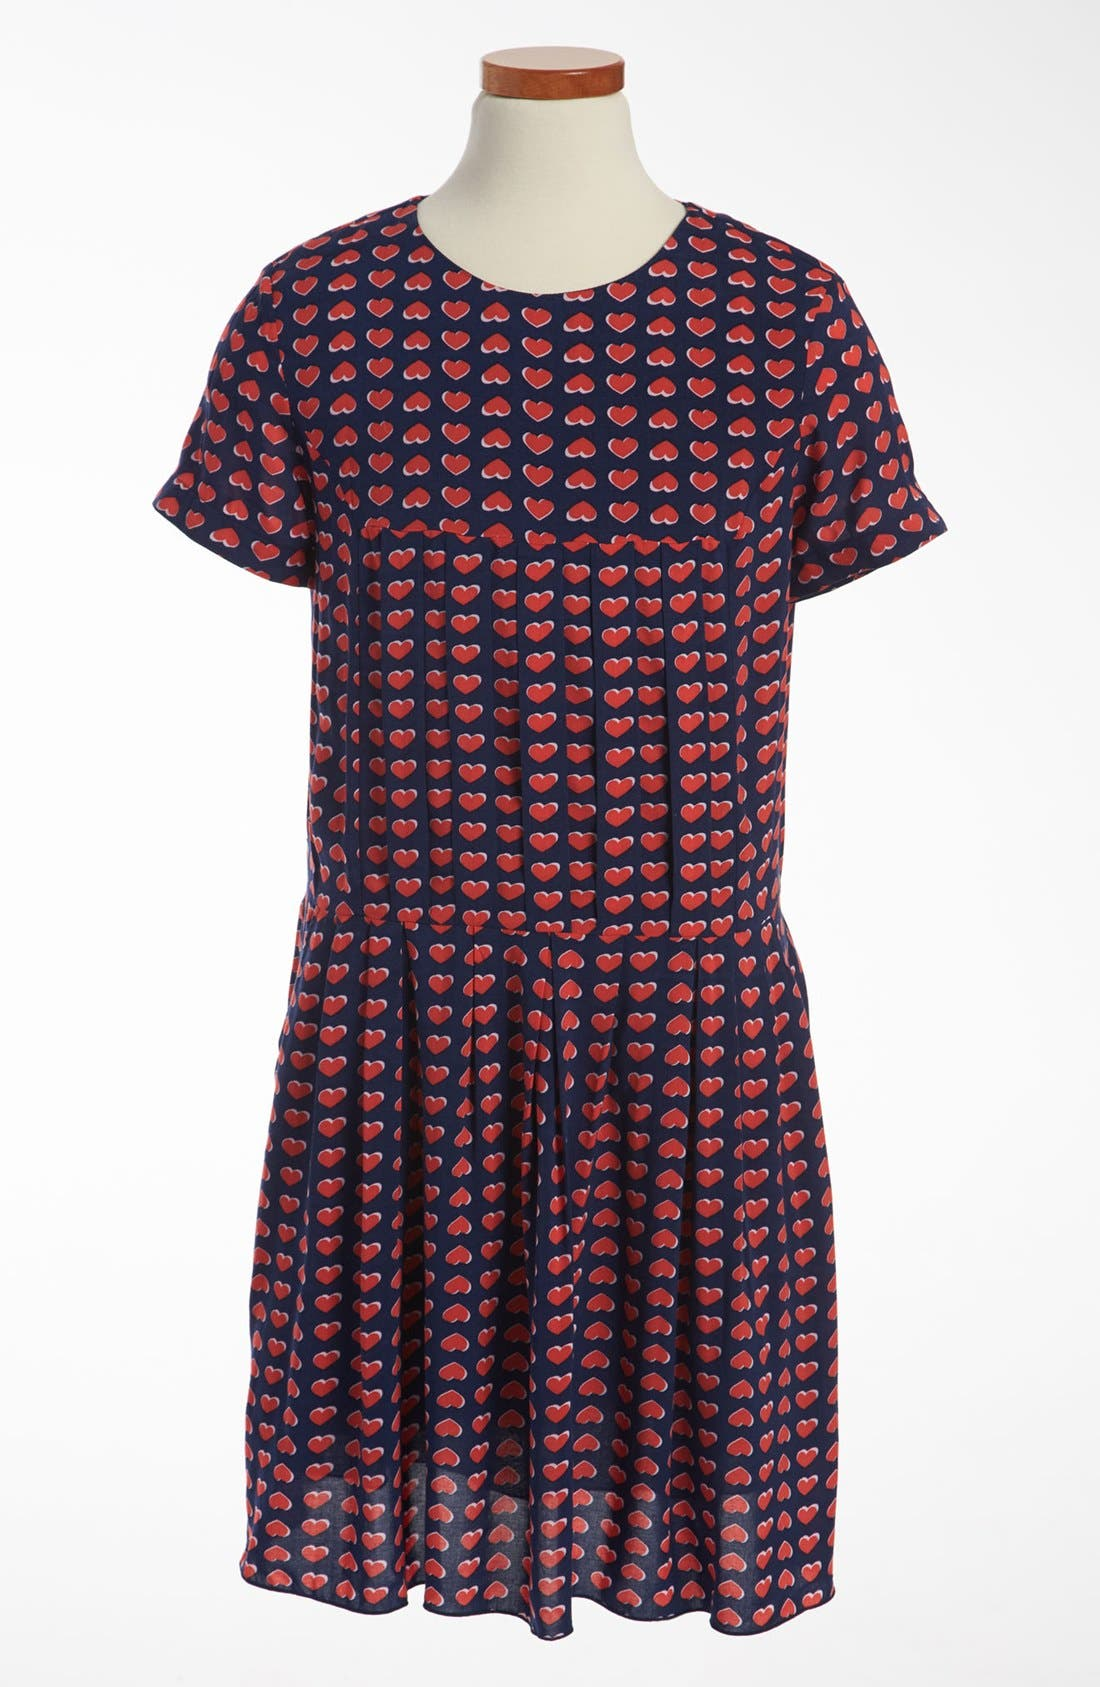 Alternate Image 1 Selected - LITTLE MARC JACOBS 'Heart Print' Woven Dress (Little Girls & Big Girls)